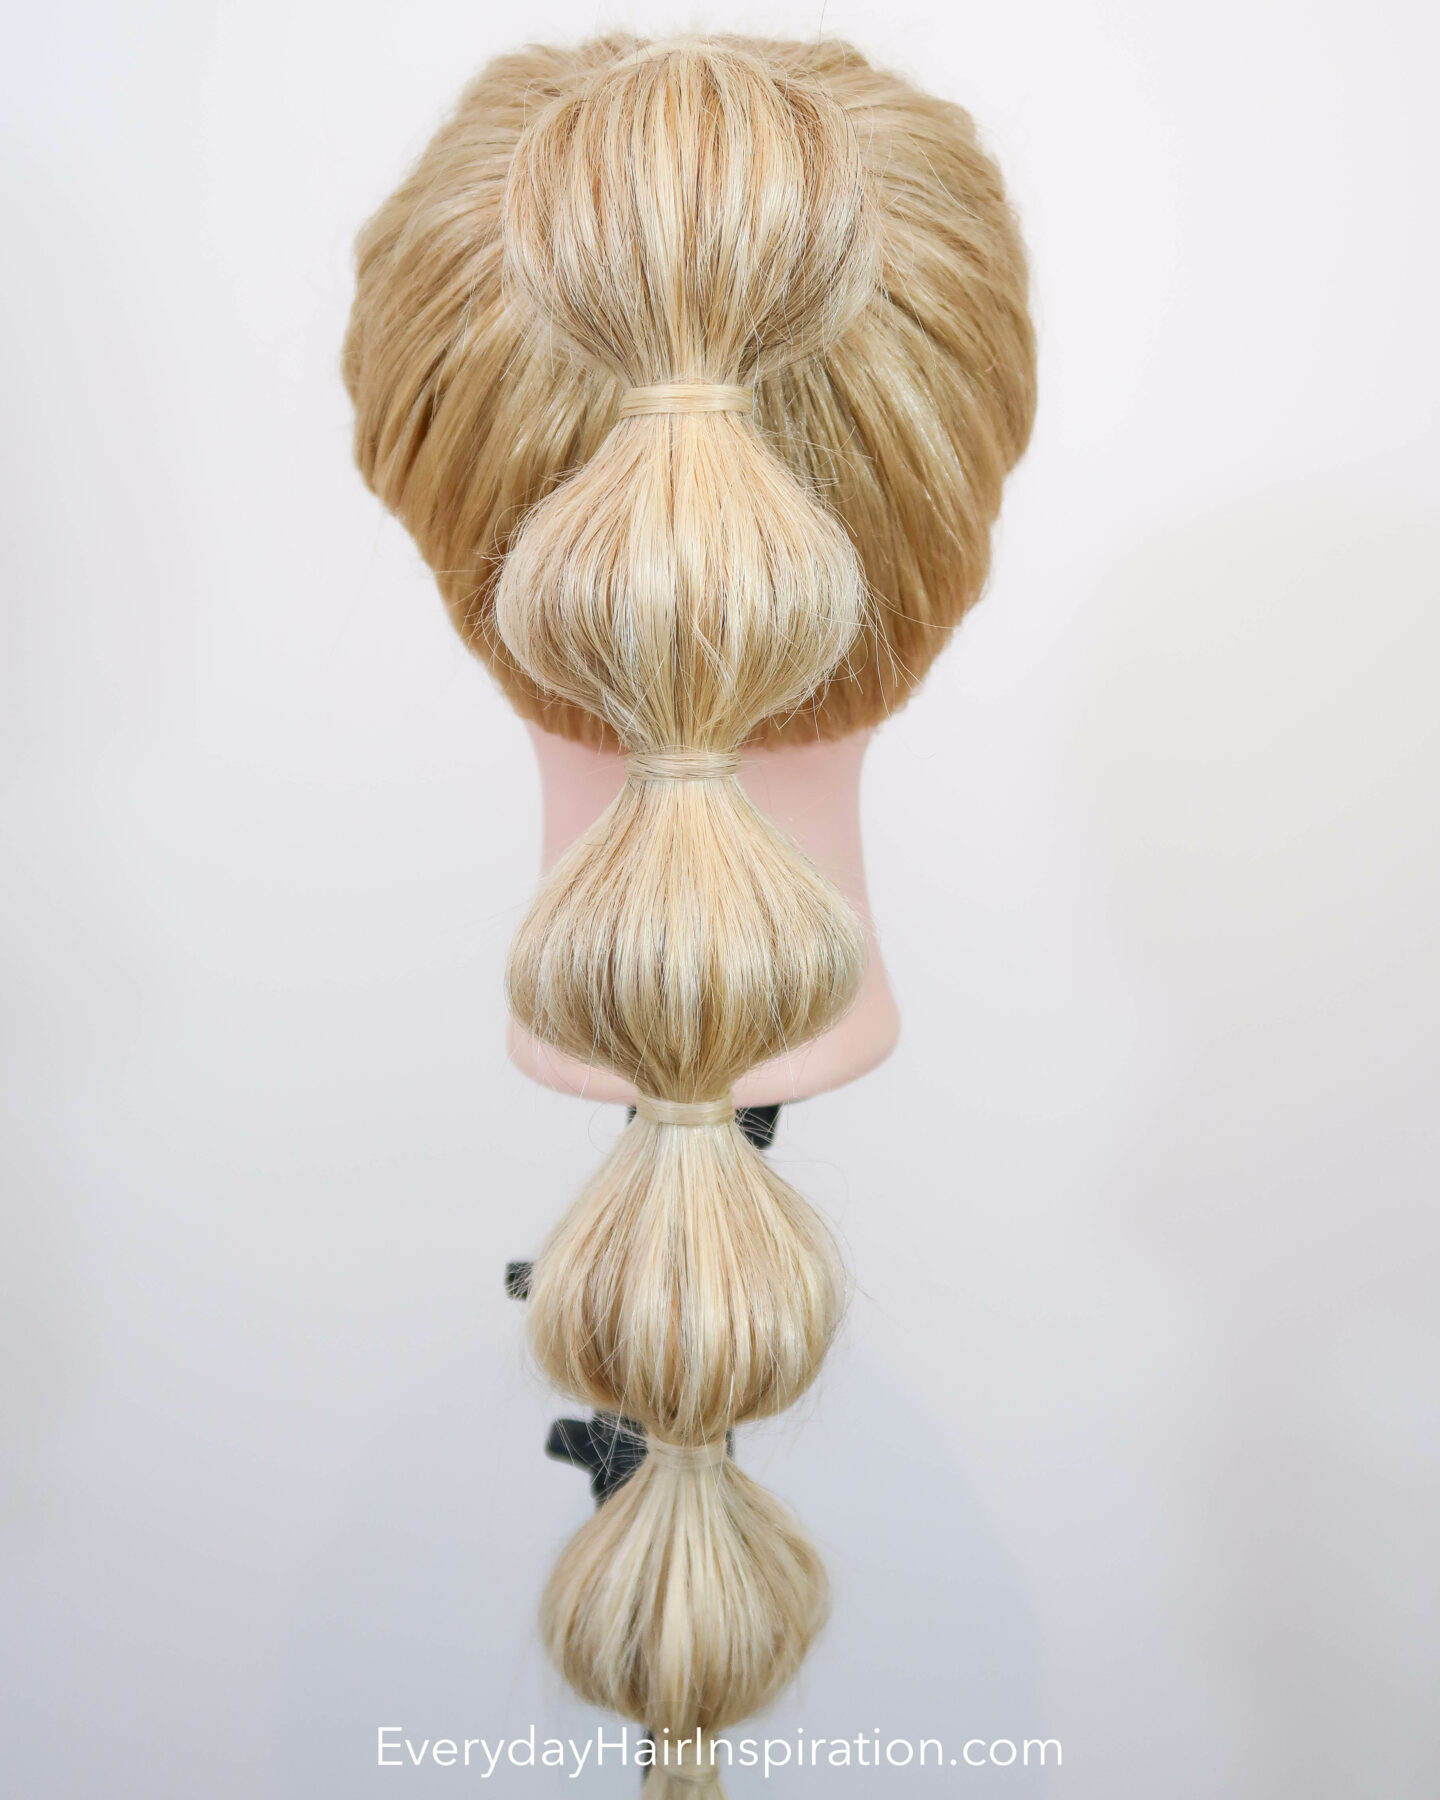 Blonde hairdresser doll, seen from the back with a high ponytail with a bubble braid down the hair.